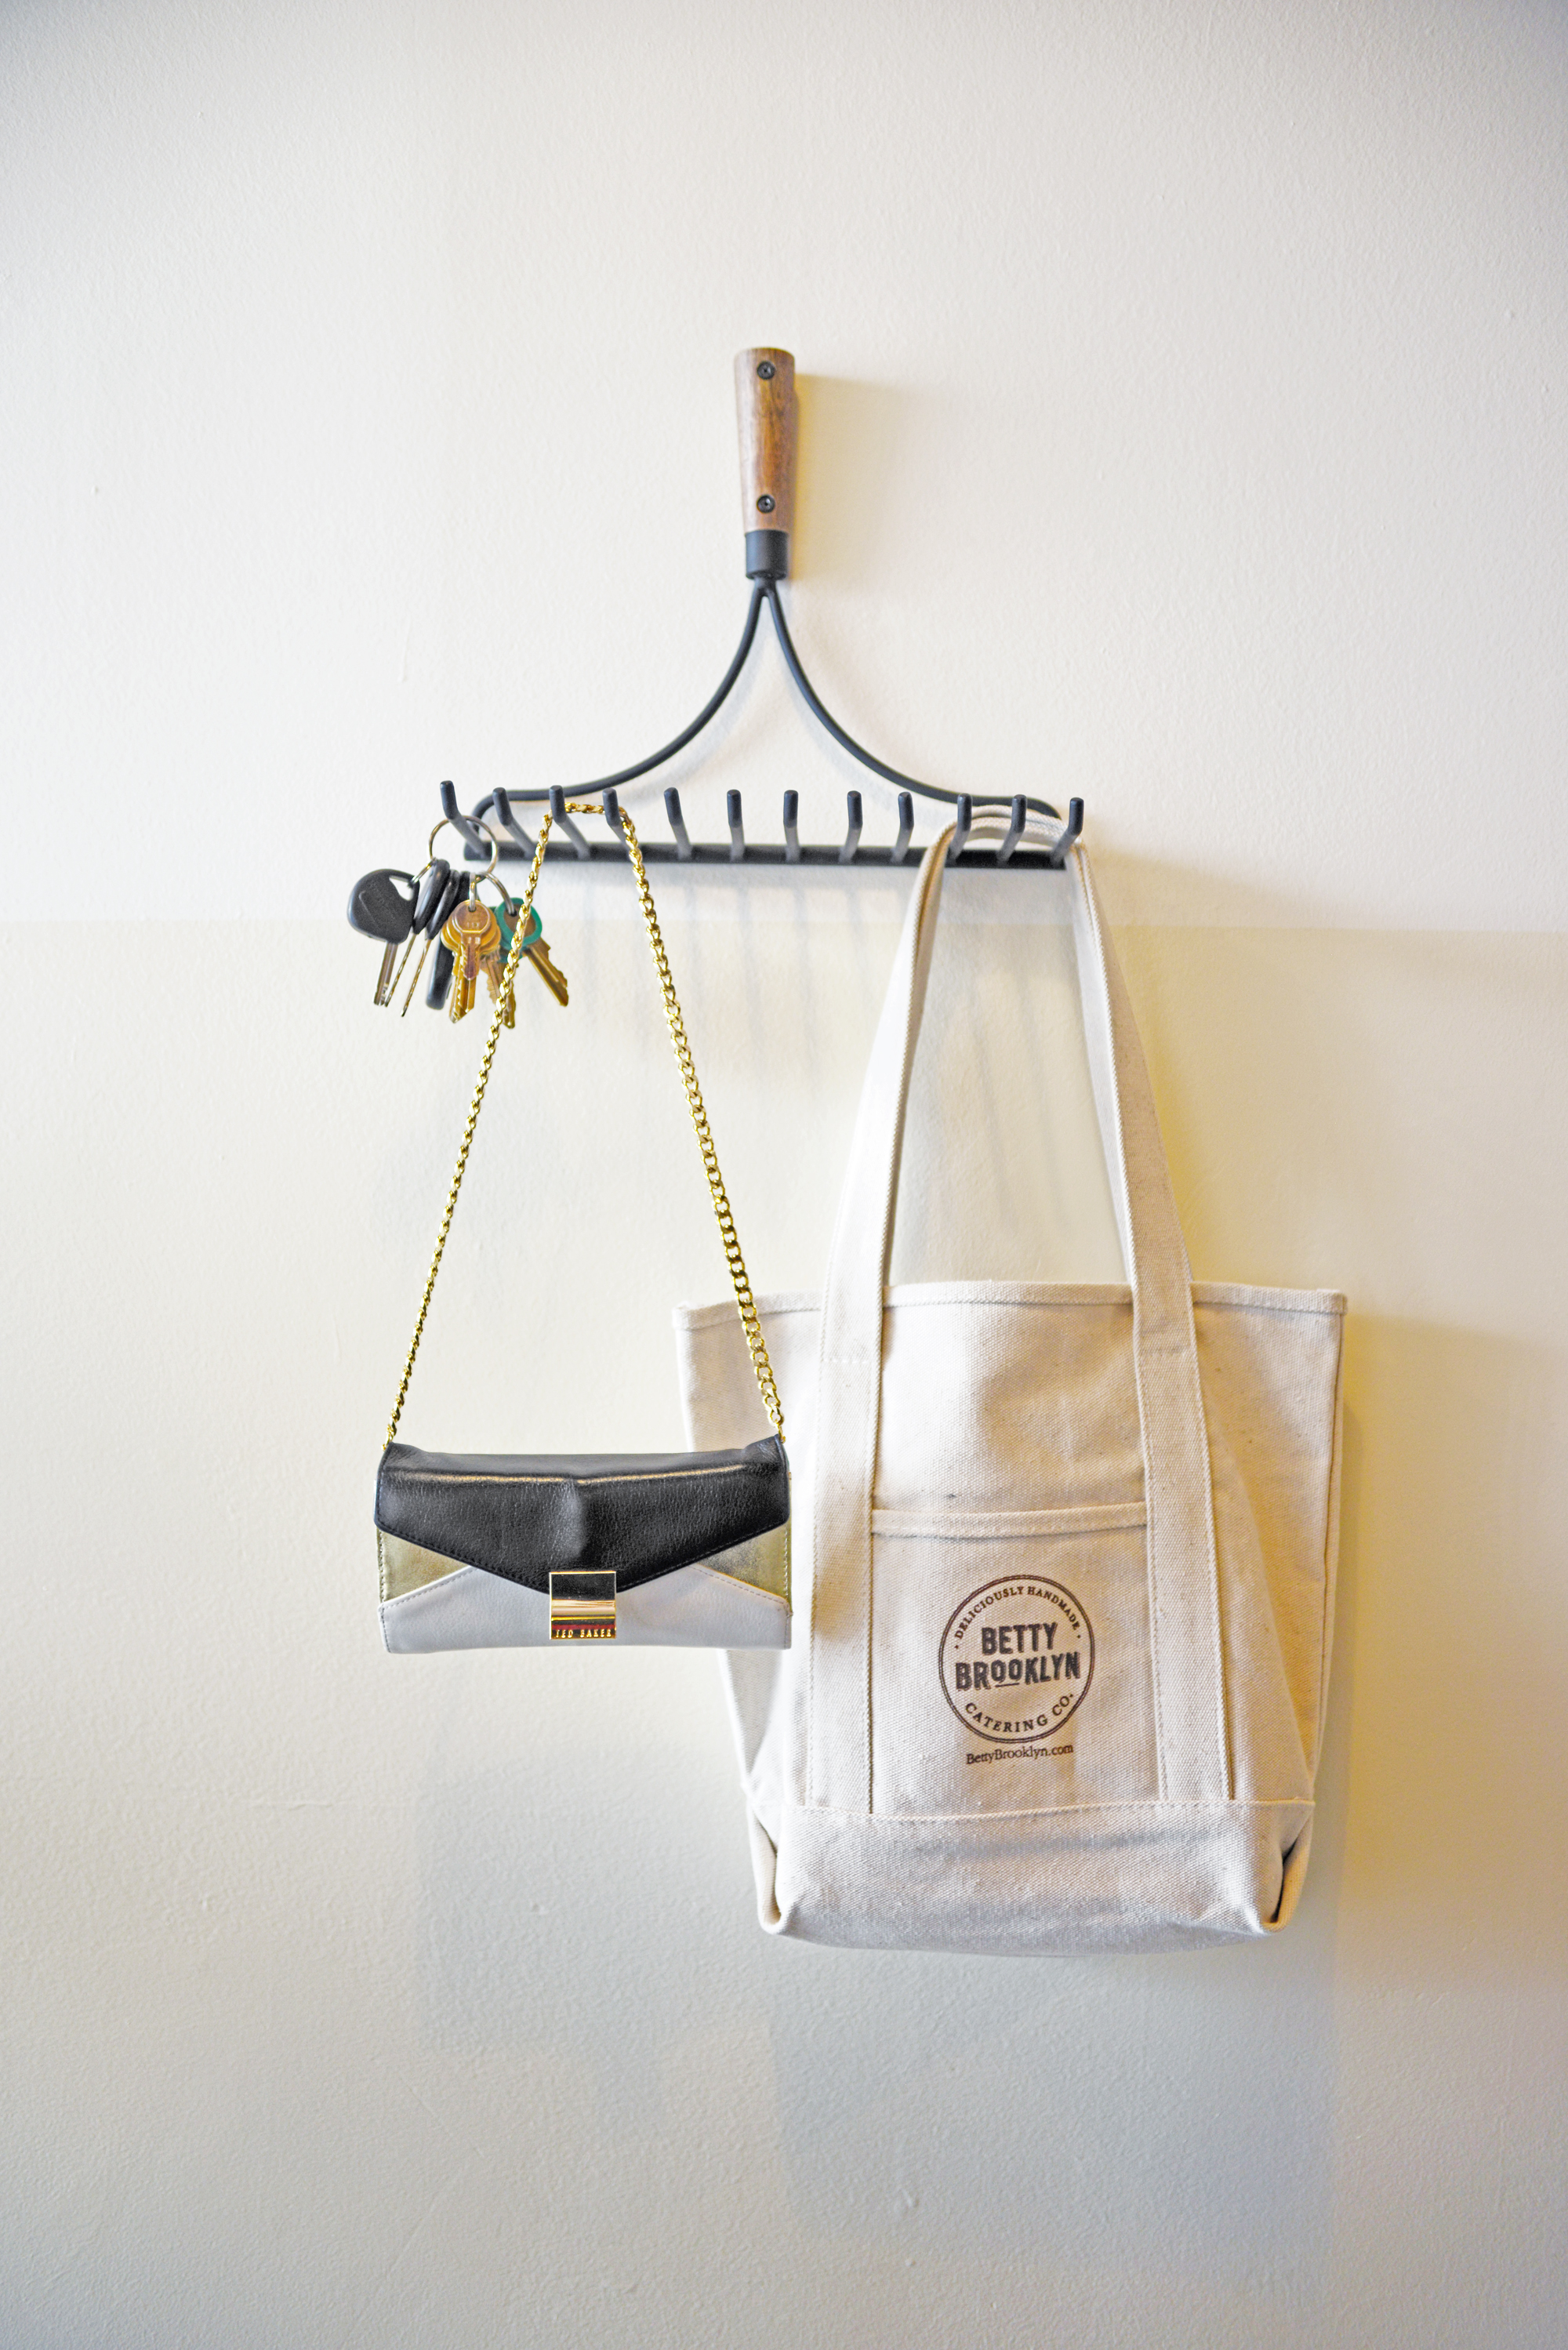 Kalin sourced this pitchfork style hanger to hold her keys and accessories in the office. It's functional, slightly humorous and works with the overall design of the space  | Betty Brooklyn Catering Co. | Photography by: Lauren L Caron © 2015.